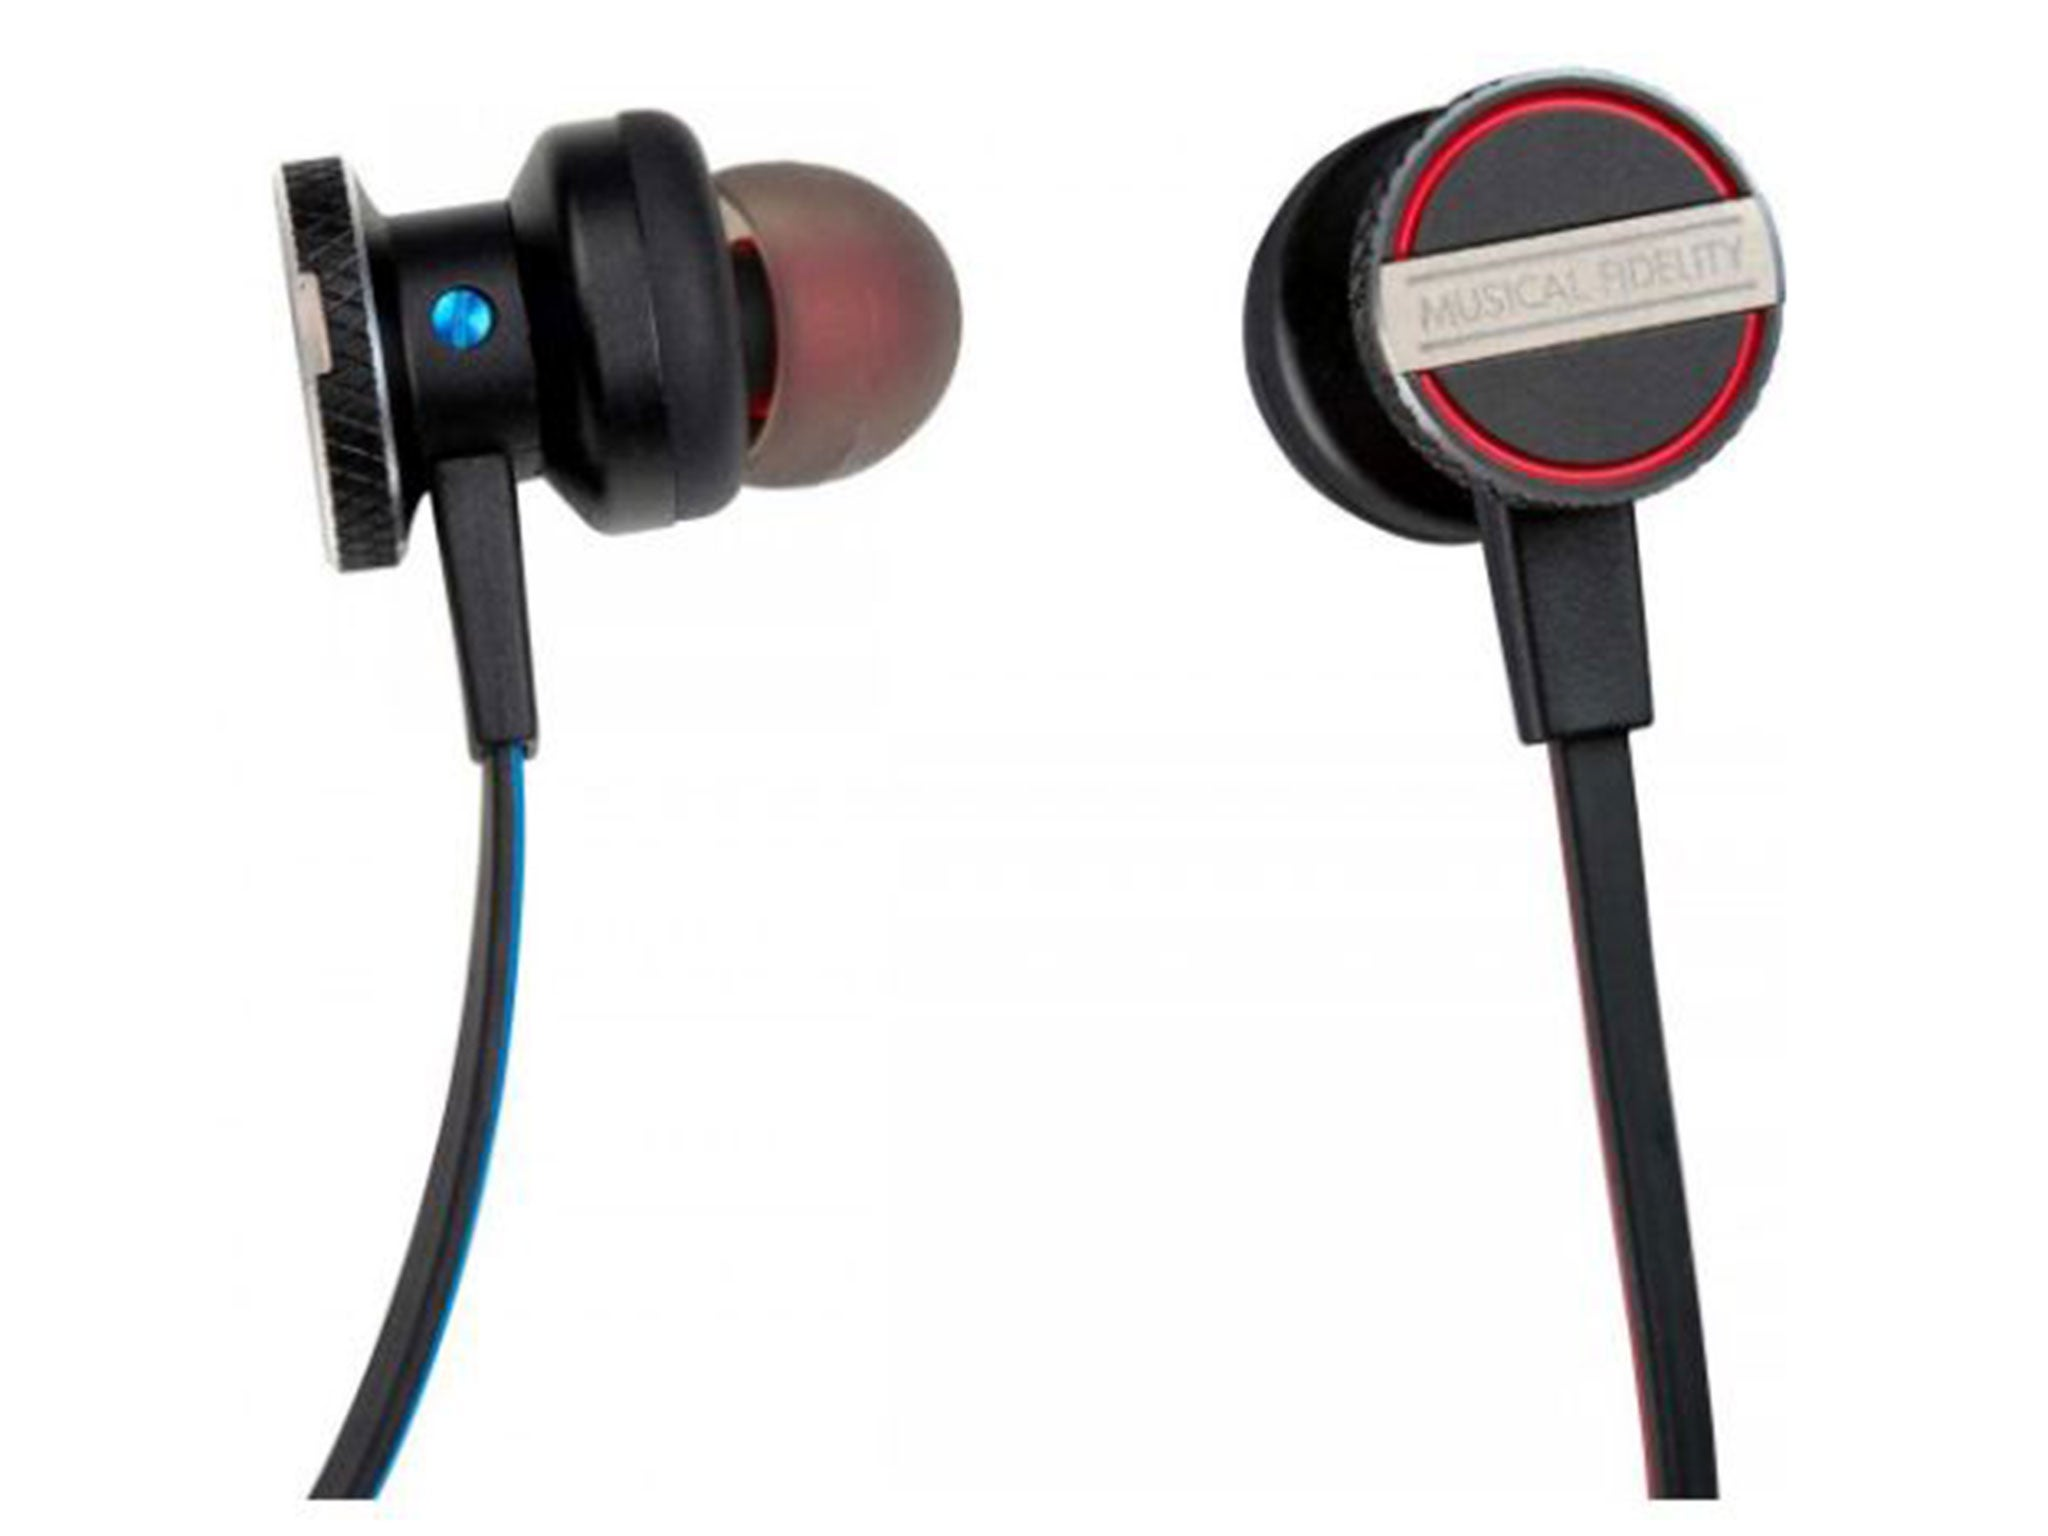 13 Best In Ear Headphones The Independent Defunc Plus Hybrid Corded Earbud You Can Easily Tell Which Earpiece